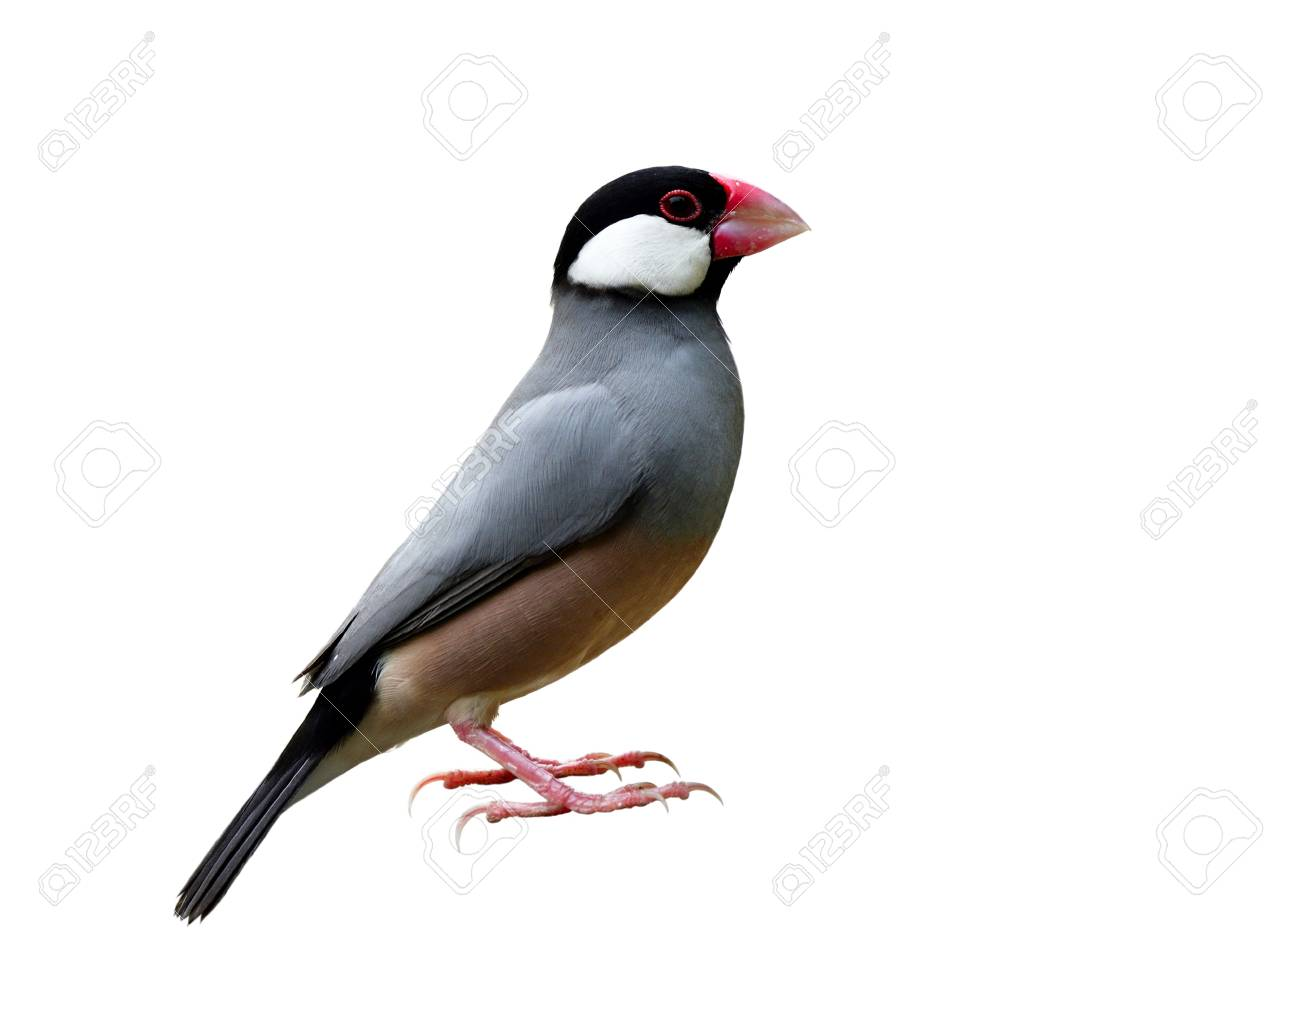 Beautiful Java sparrow (Lonchura oryzivora) Java finch or Rice